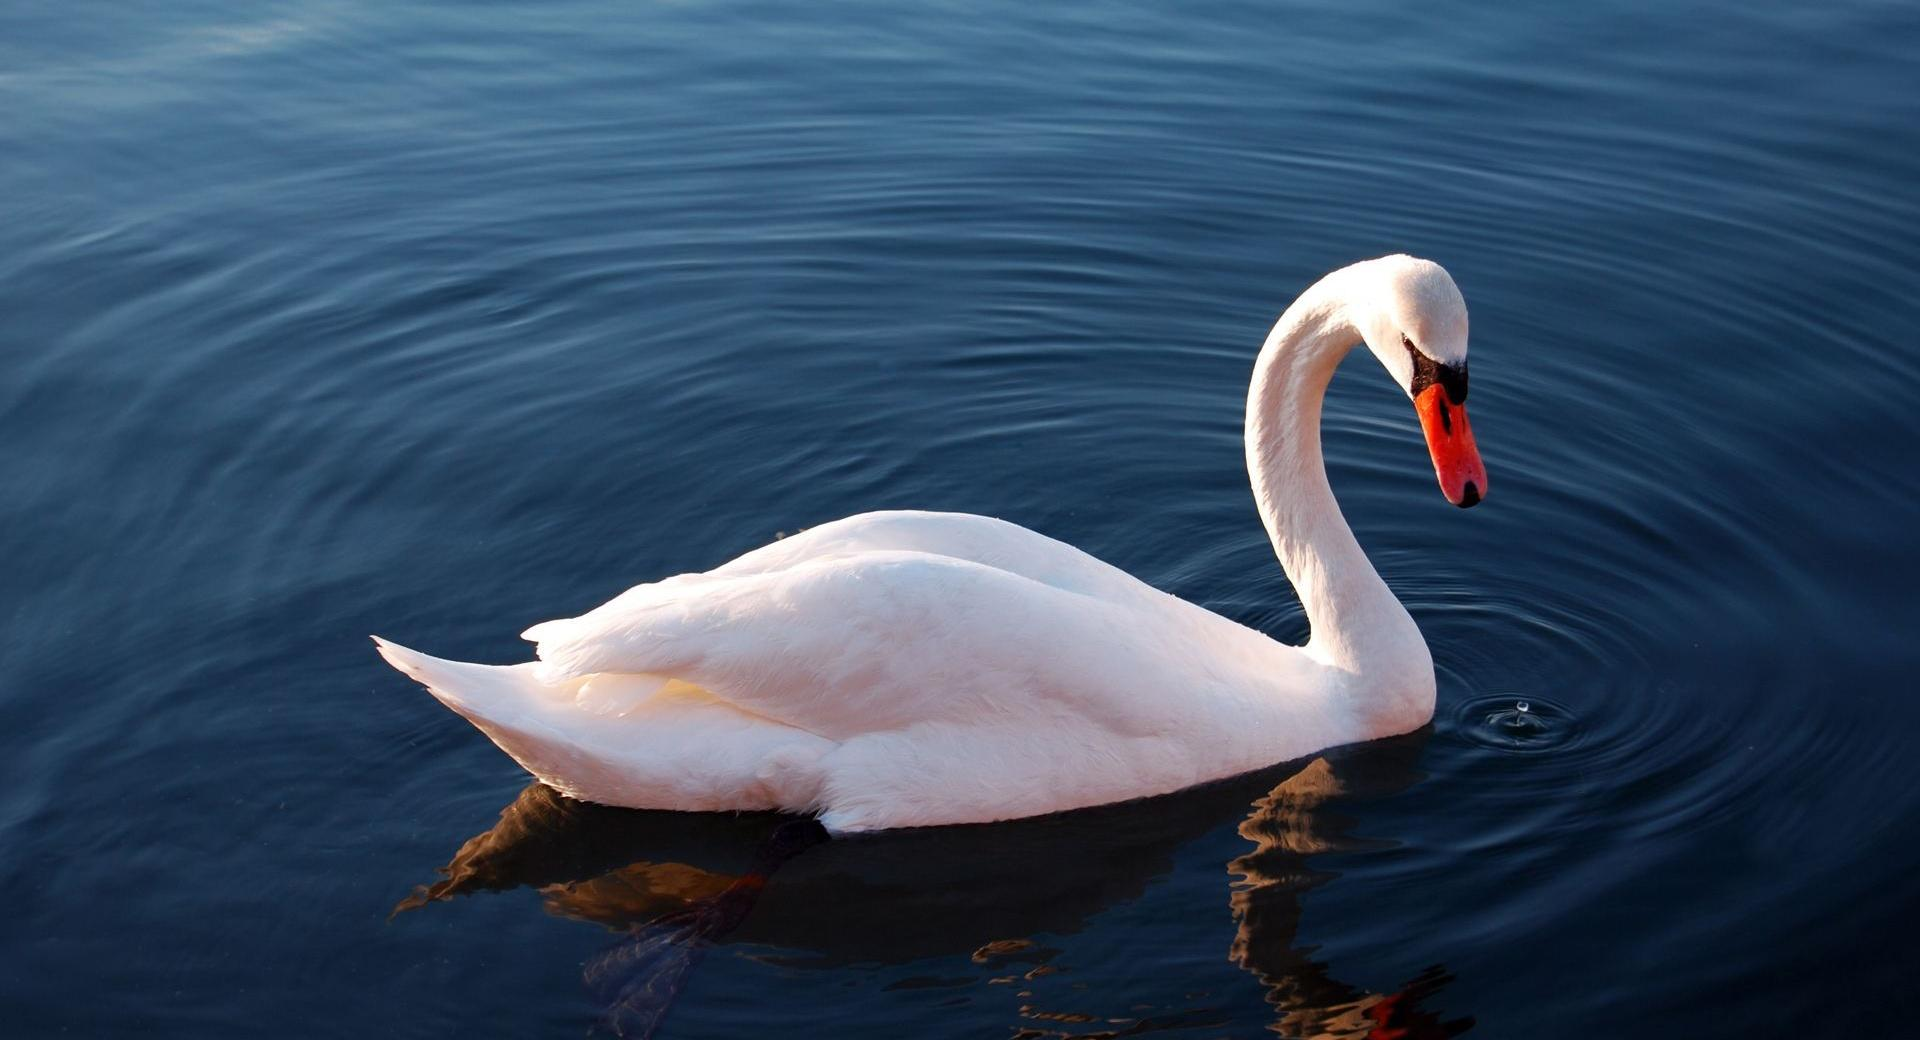 White Swan in Water wallpapers HD quality